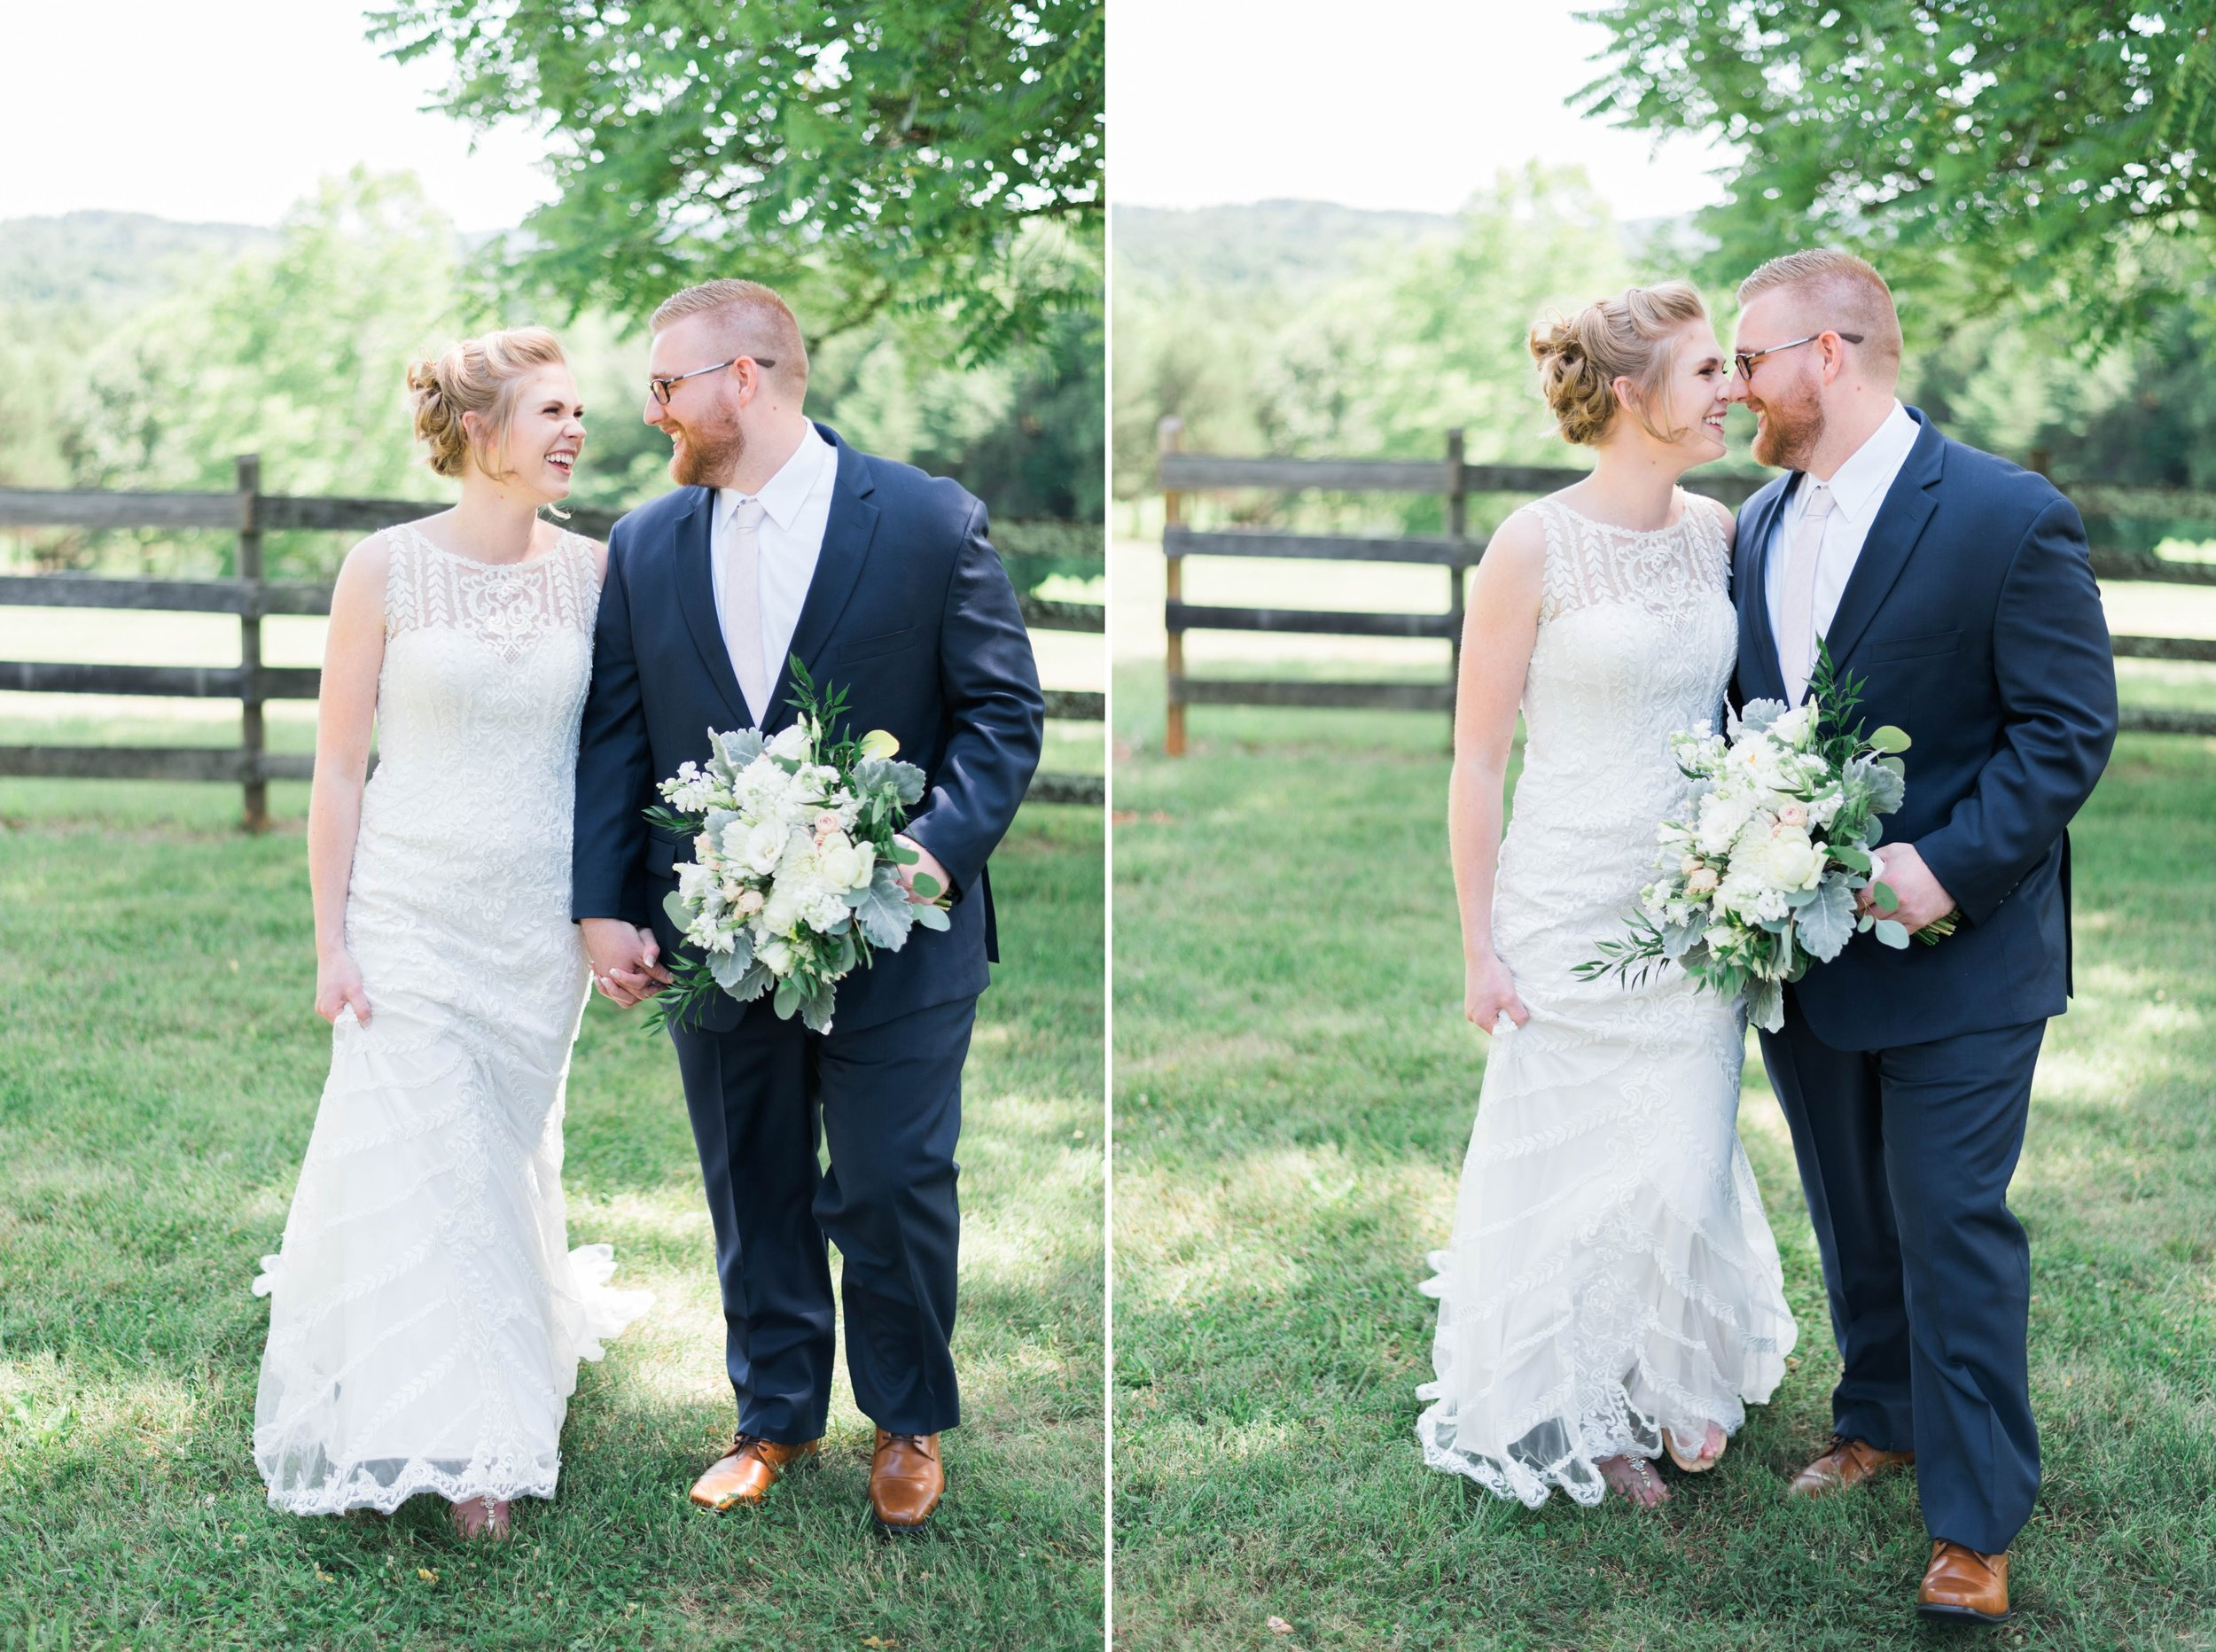 SorellaFarms_VirginiaWeddingPhotographer_BarnWedding_Lynchburgweddingphotographer_DanielleTyler 46.jpg